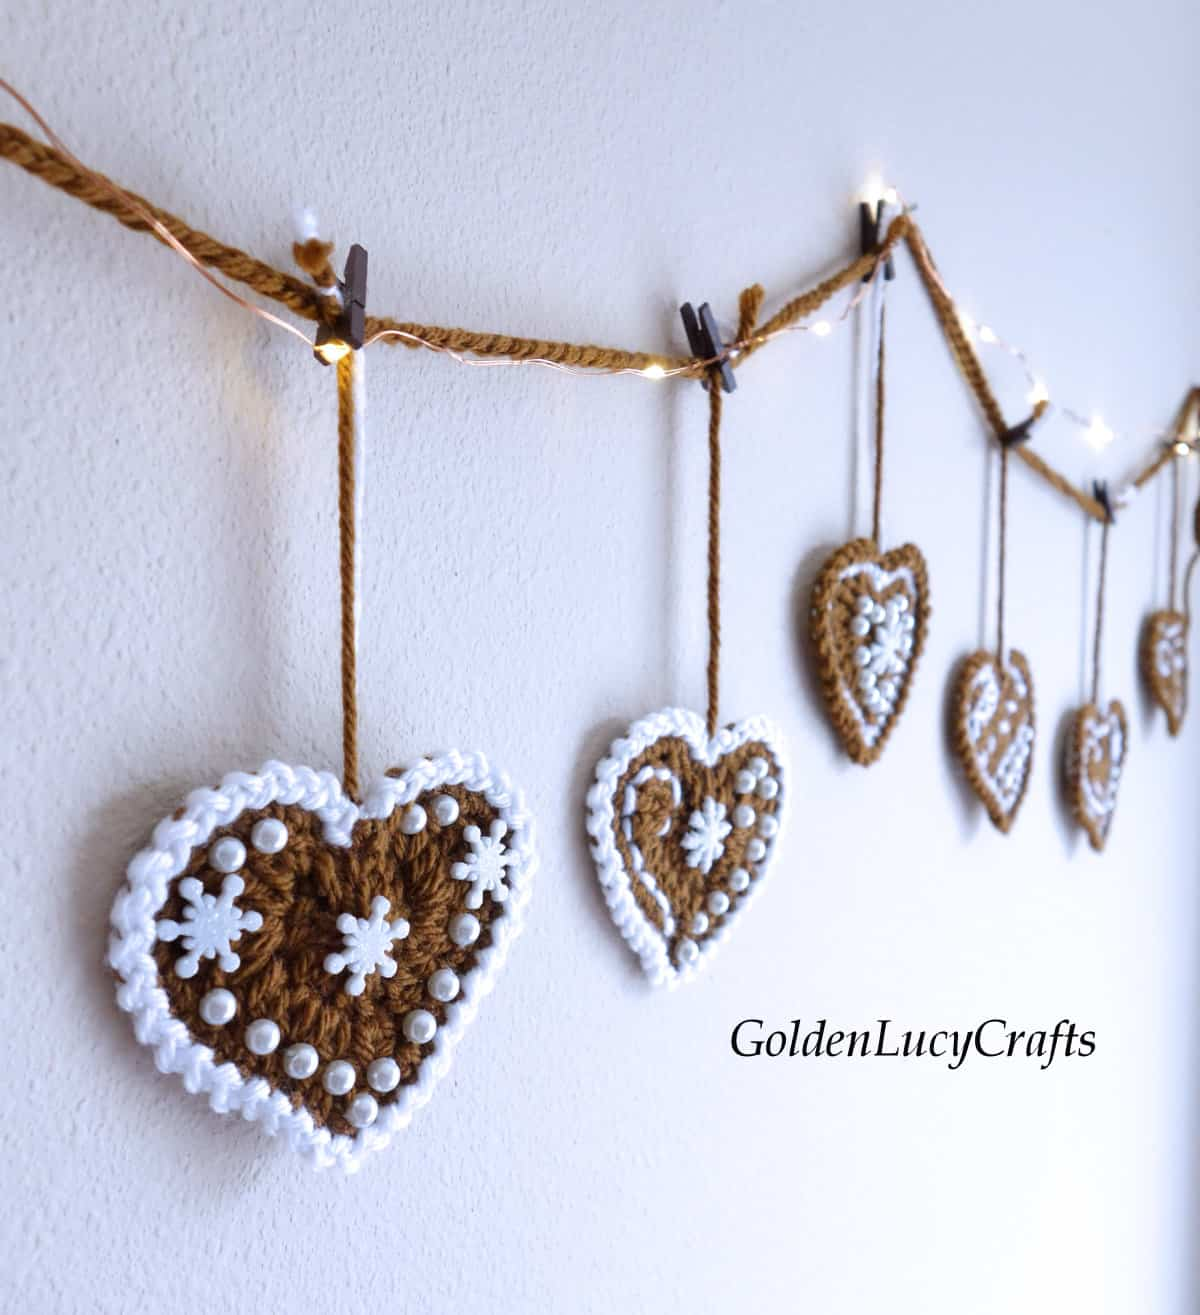 Crochet gingerbread garland hanging on the wall